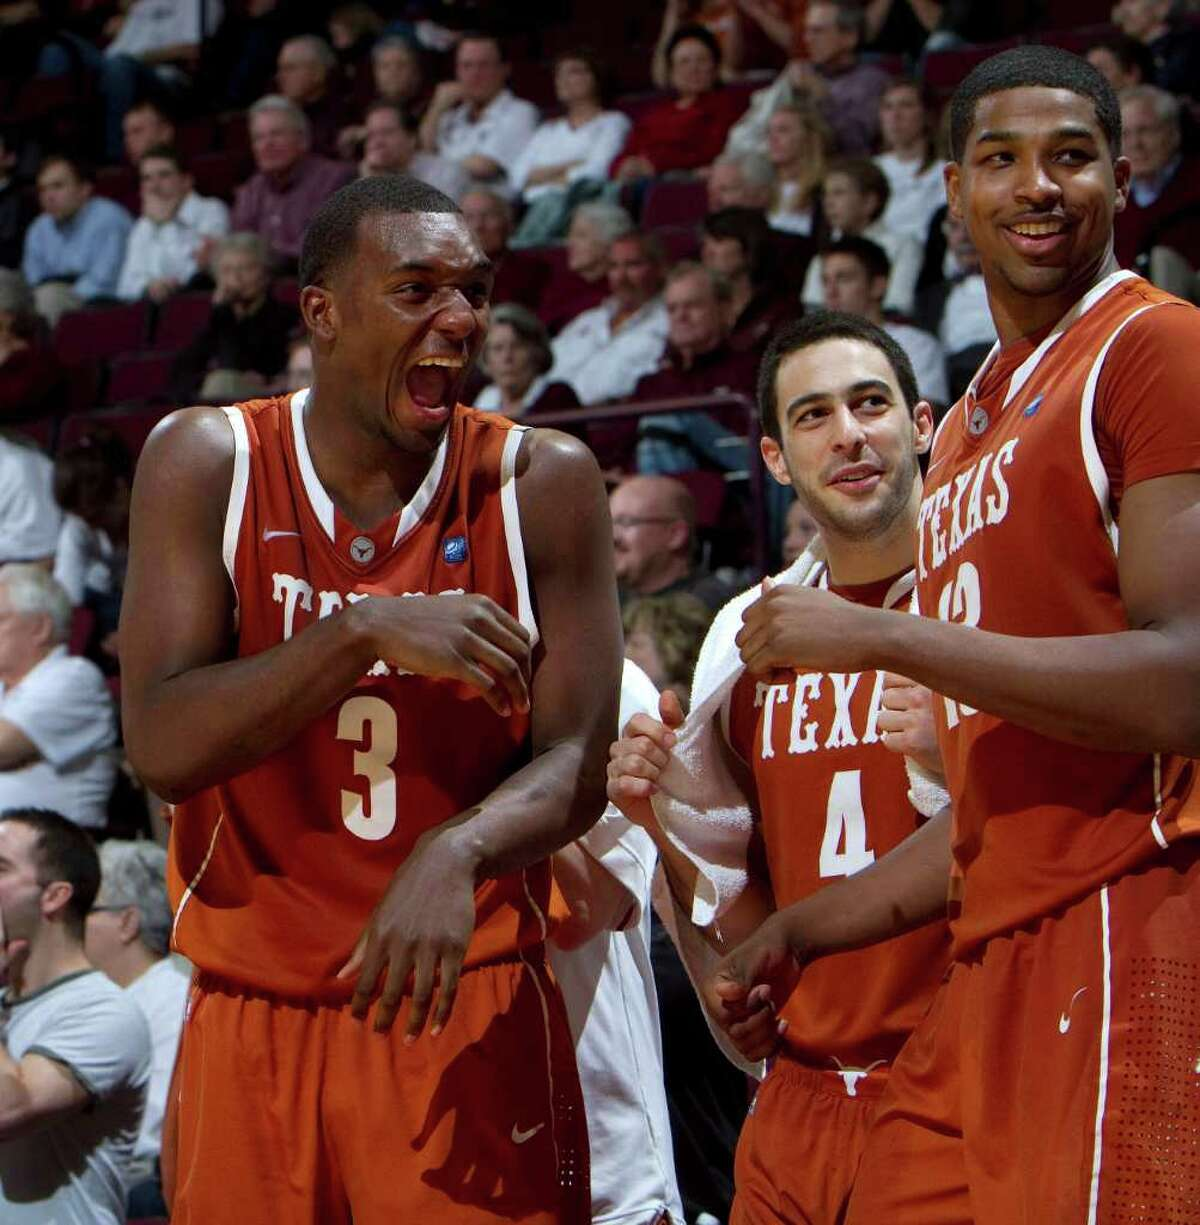 Texas' Jordan Hamilton, Dogus Balbay and Tristan Thompson (right), celebrate after a score during the second half on Monday, Jan. 31, 2011, against Texas A&M in College Station. Texas won 69-49.